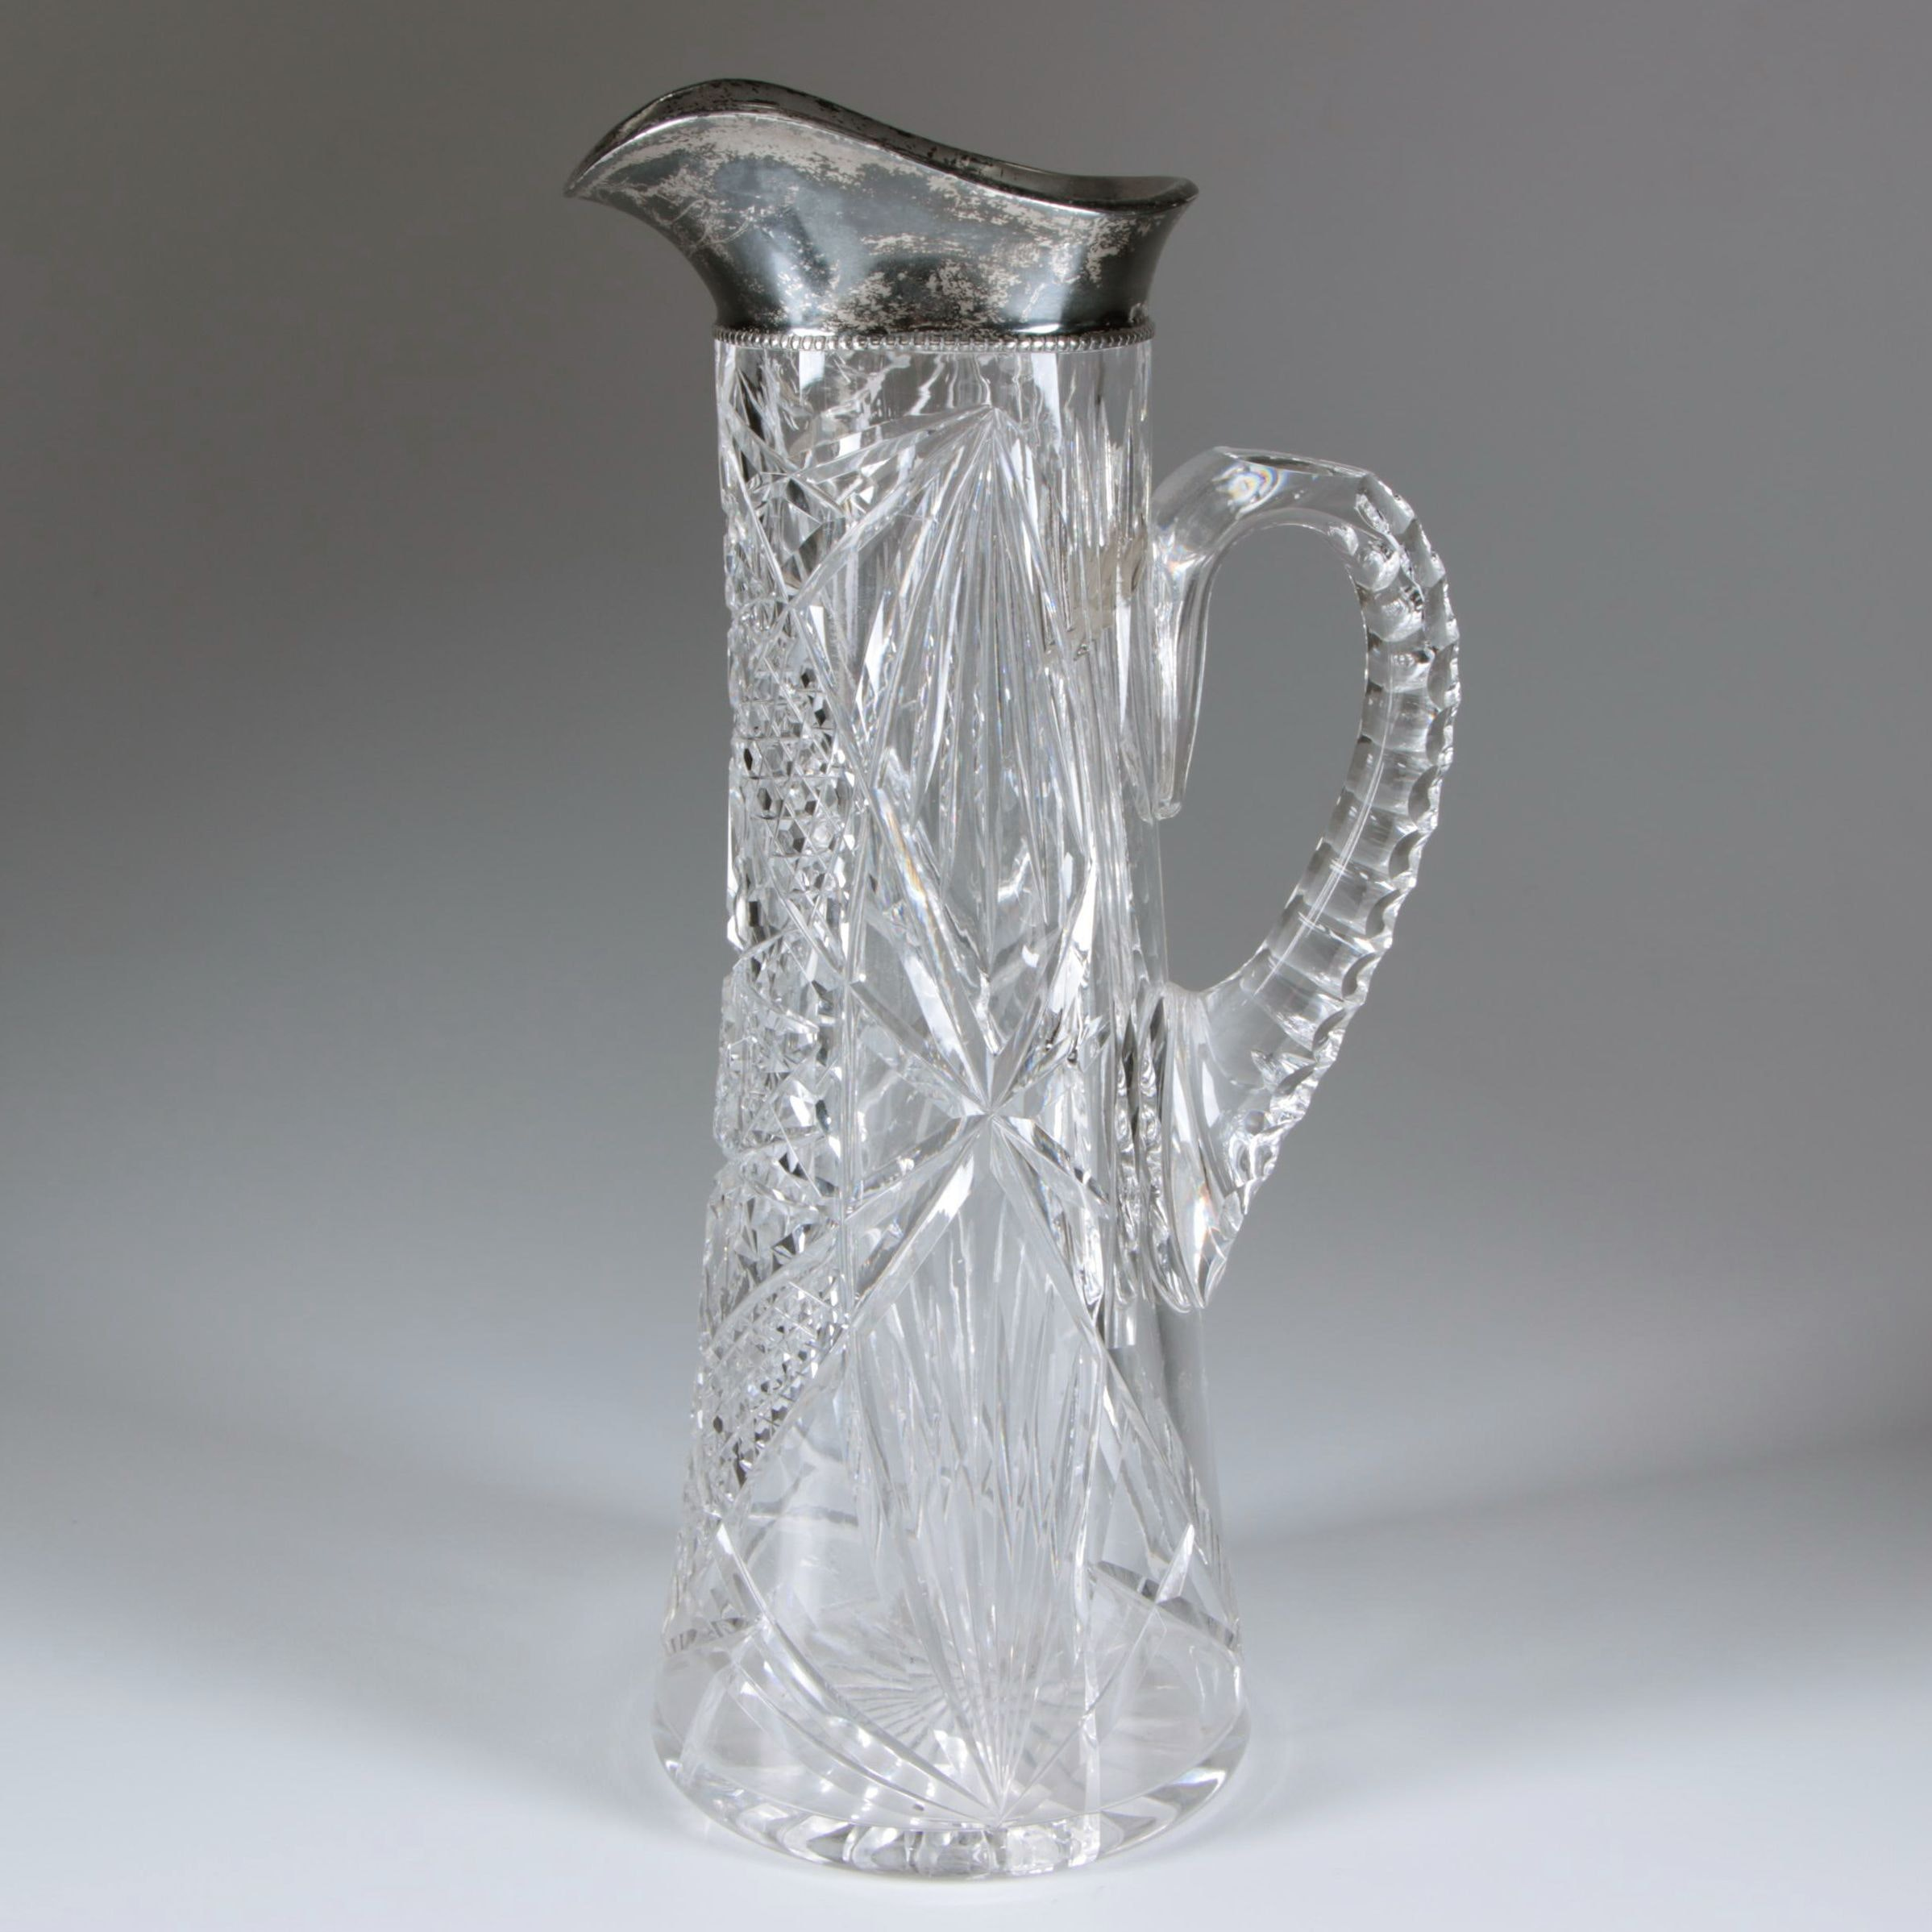 American Brilliant Cut Glass Pitcher with Gorham Sterling Lip, Late 19th Century